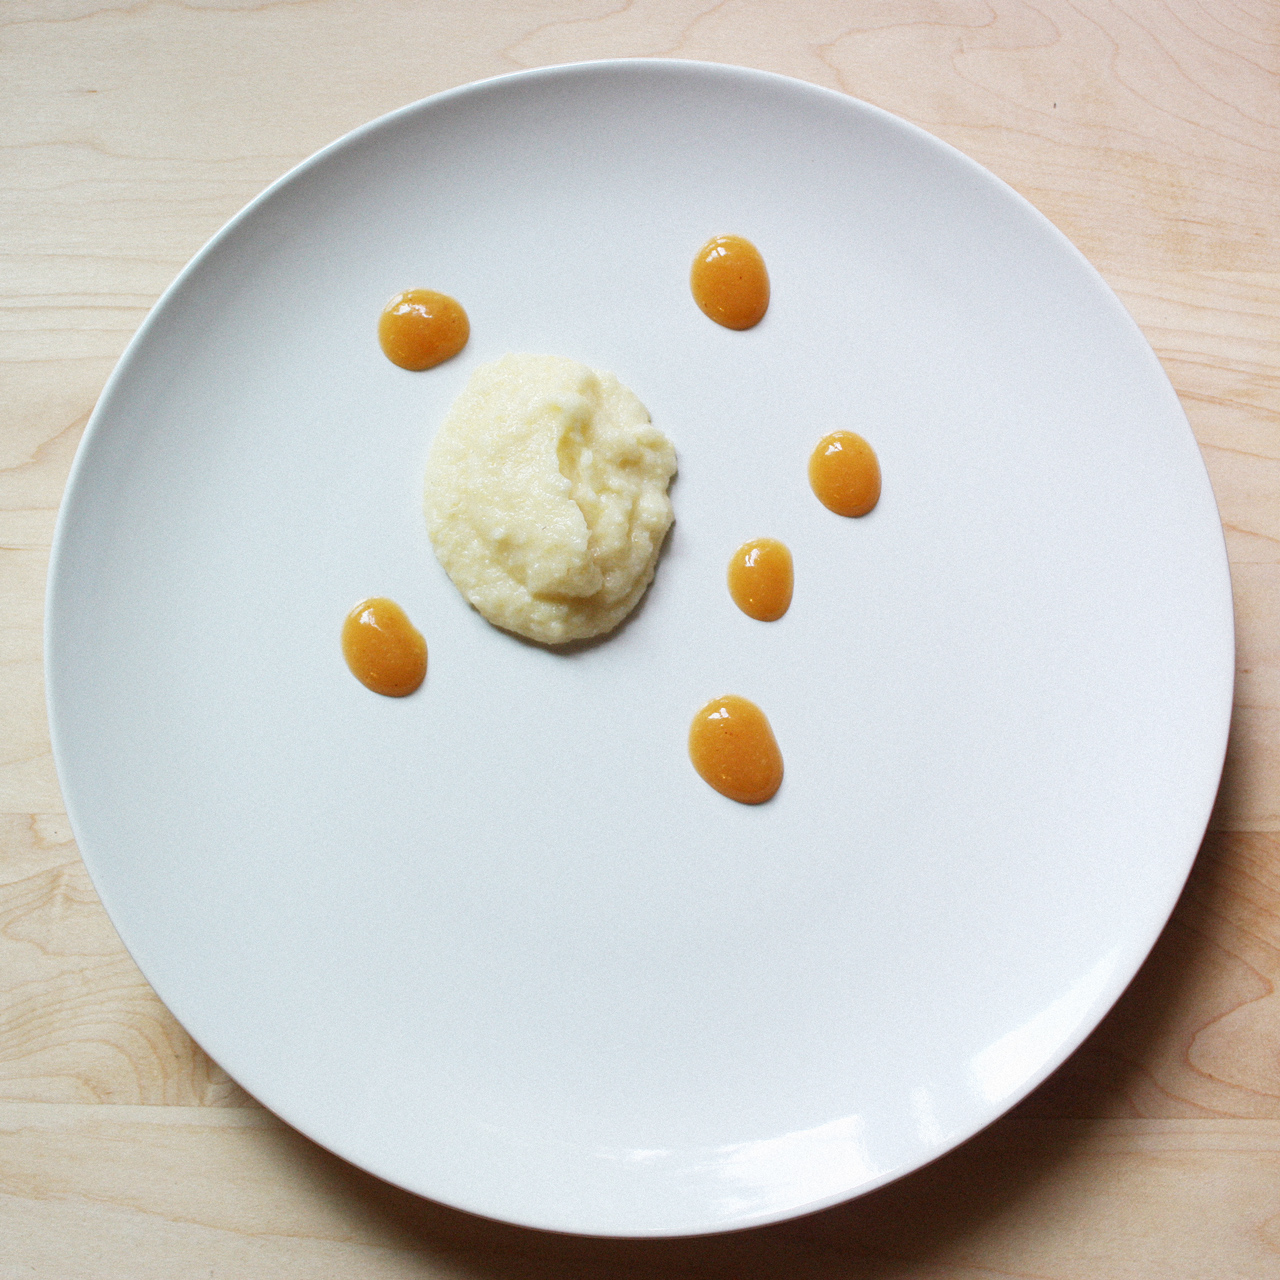 How To Plate Food Amazing Food Presentation Ideas And